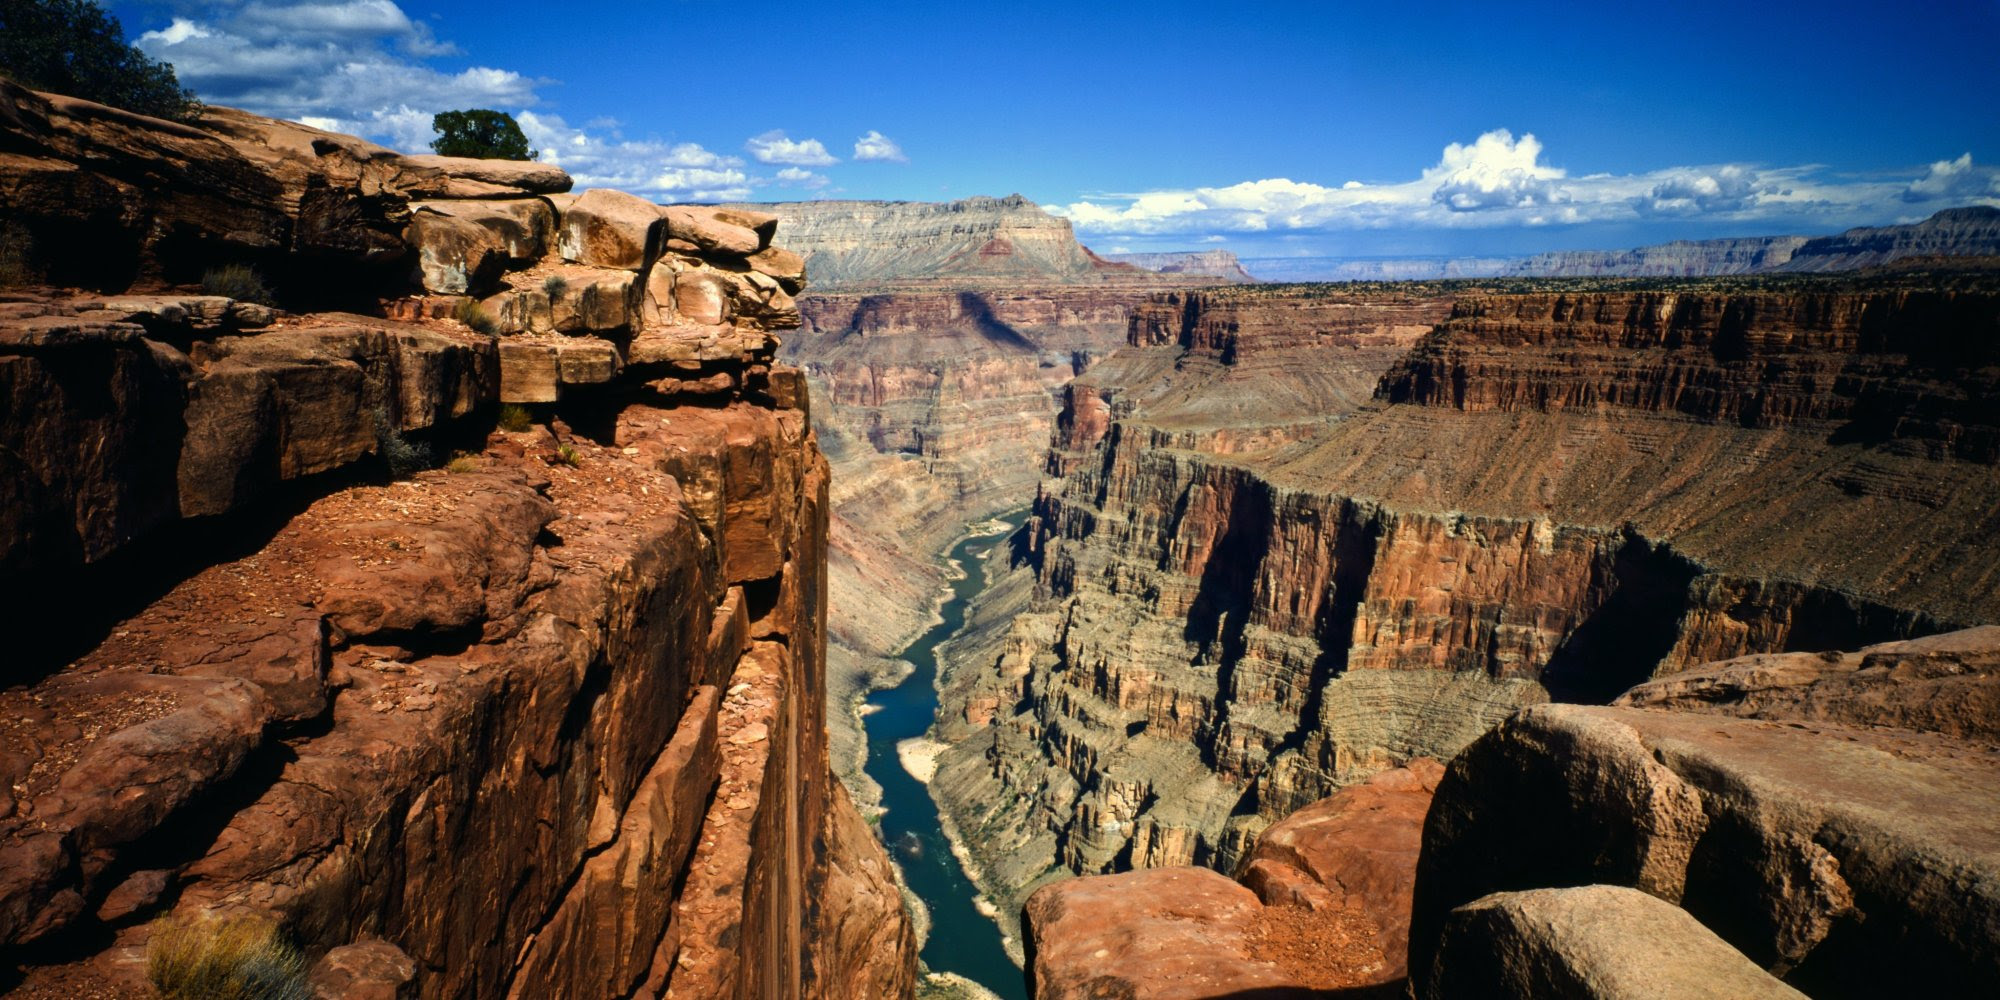 Debate Over Grand Canyon39;s Age May Finally Be Over  The Huffington